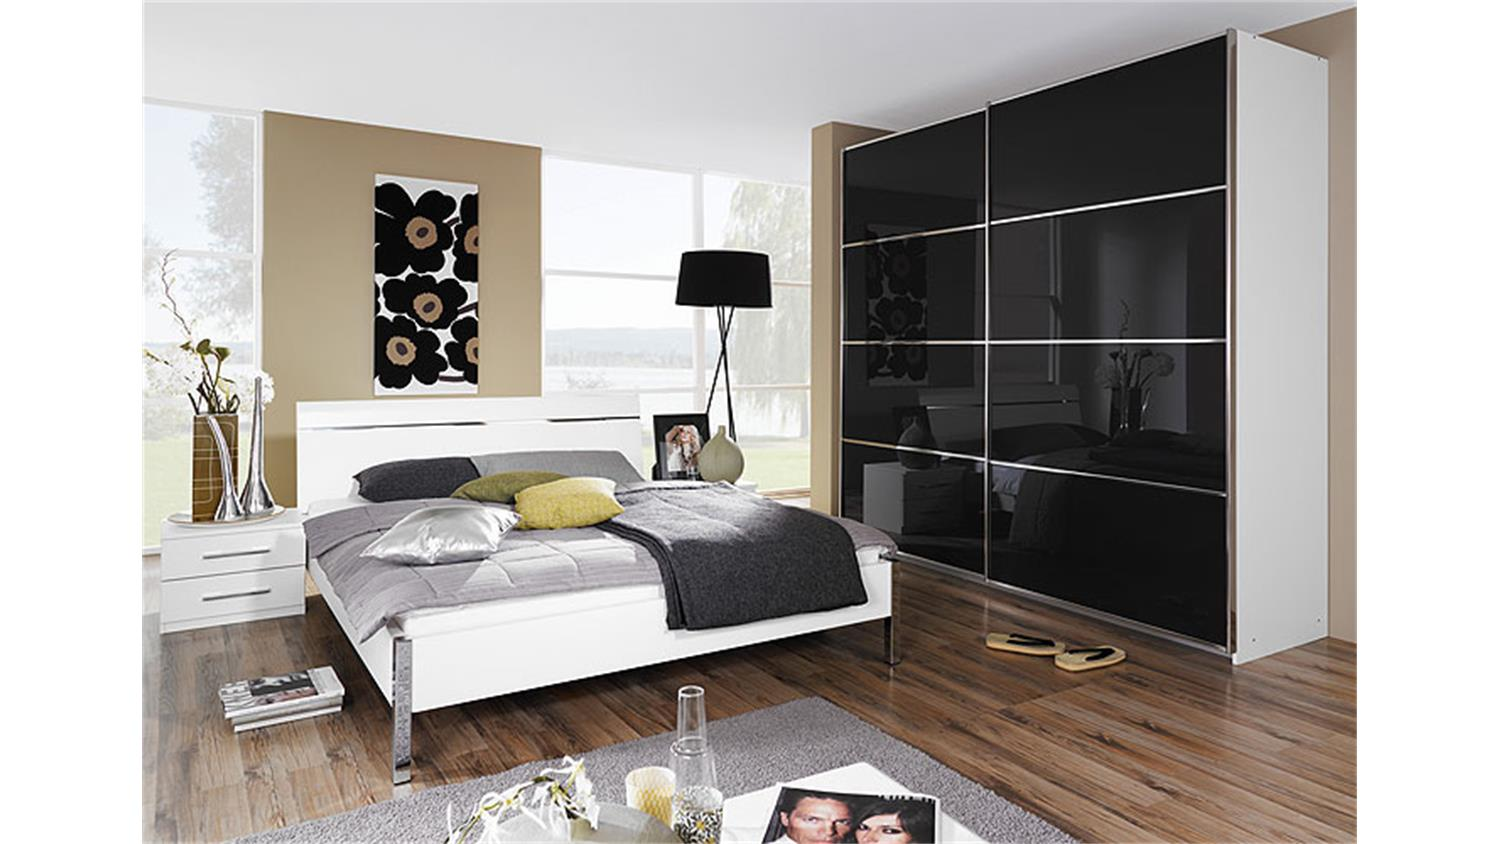 bett perfora schlafzimmerbett doppelbett in wei chrom 140. Black Bedroom Furniture Sets. Home Design Ideas